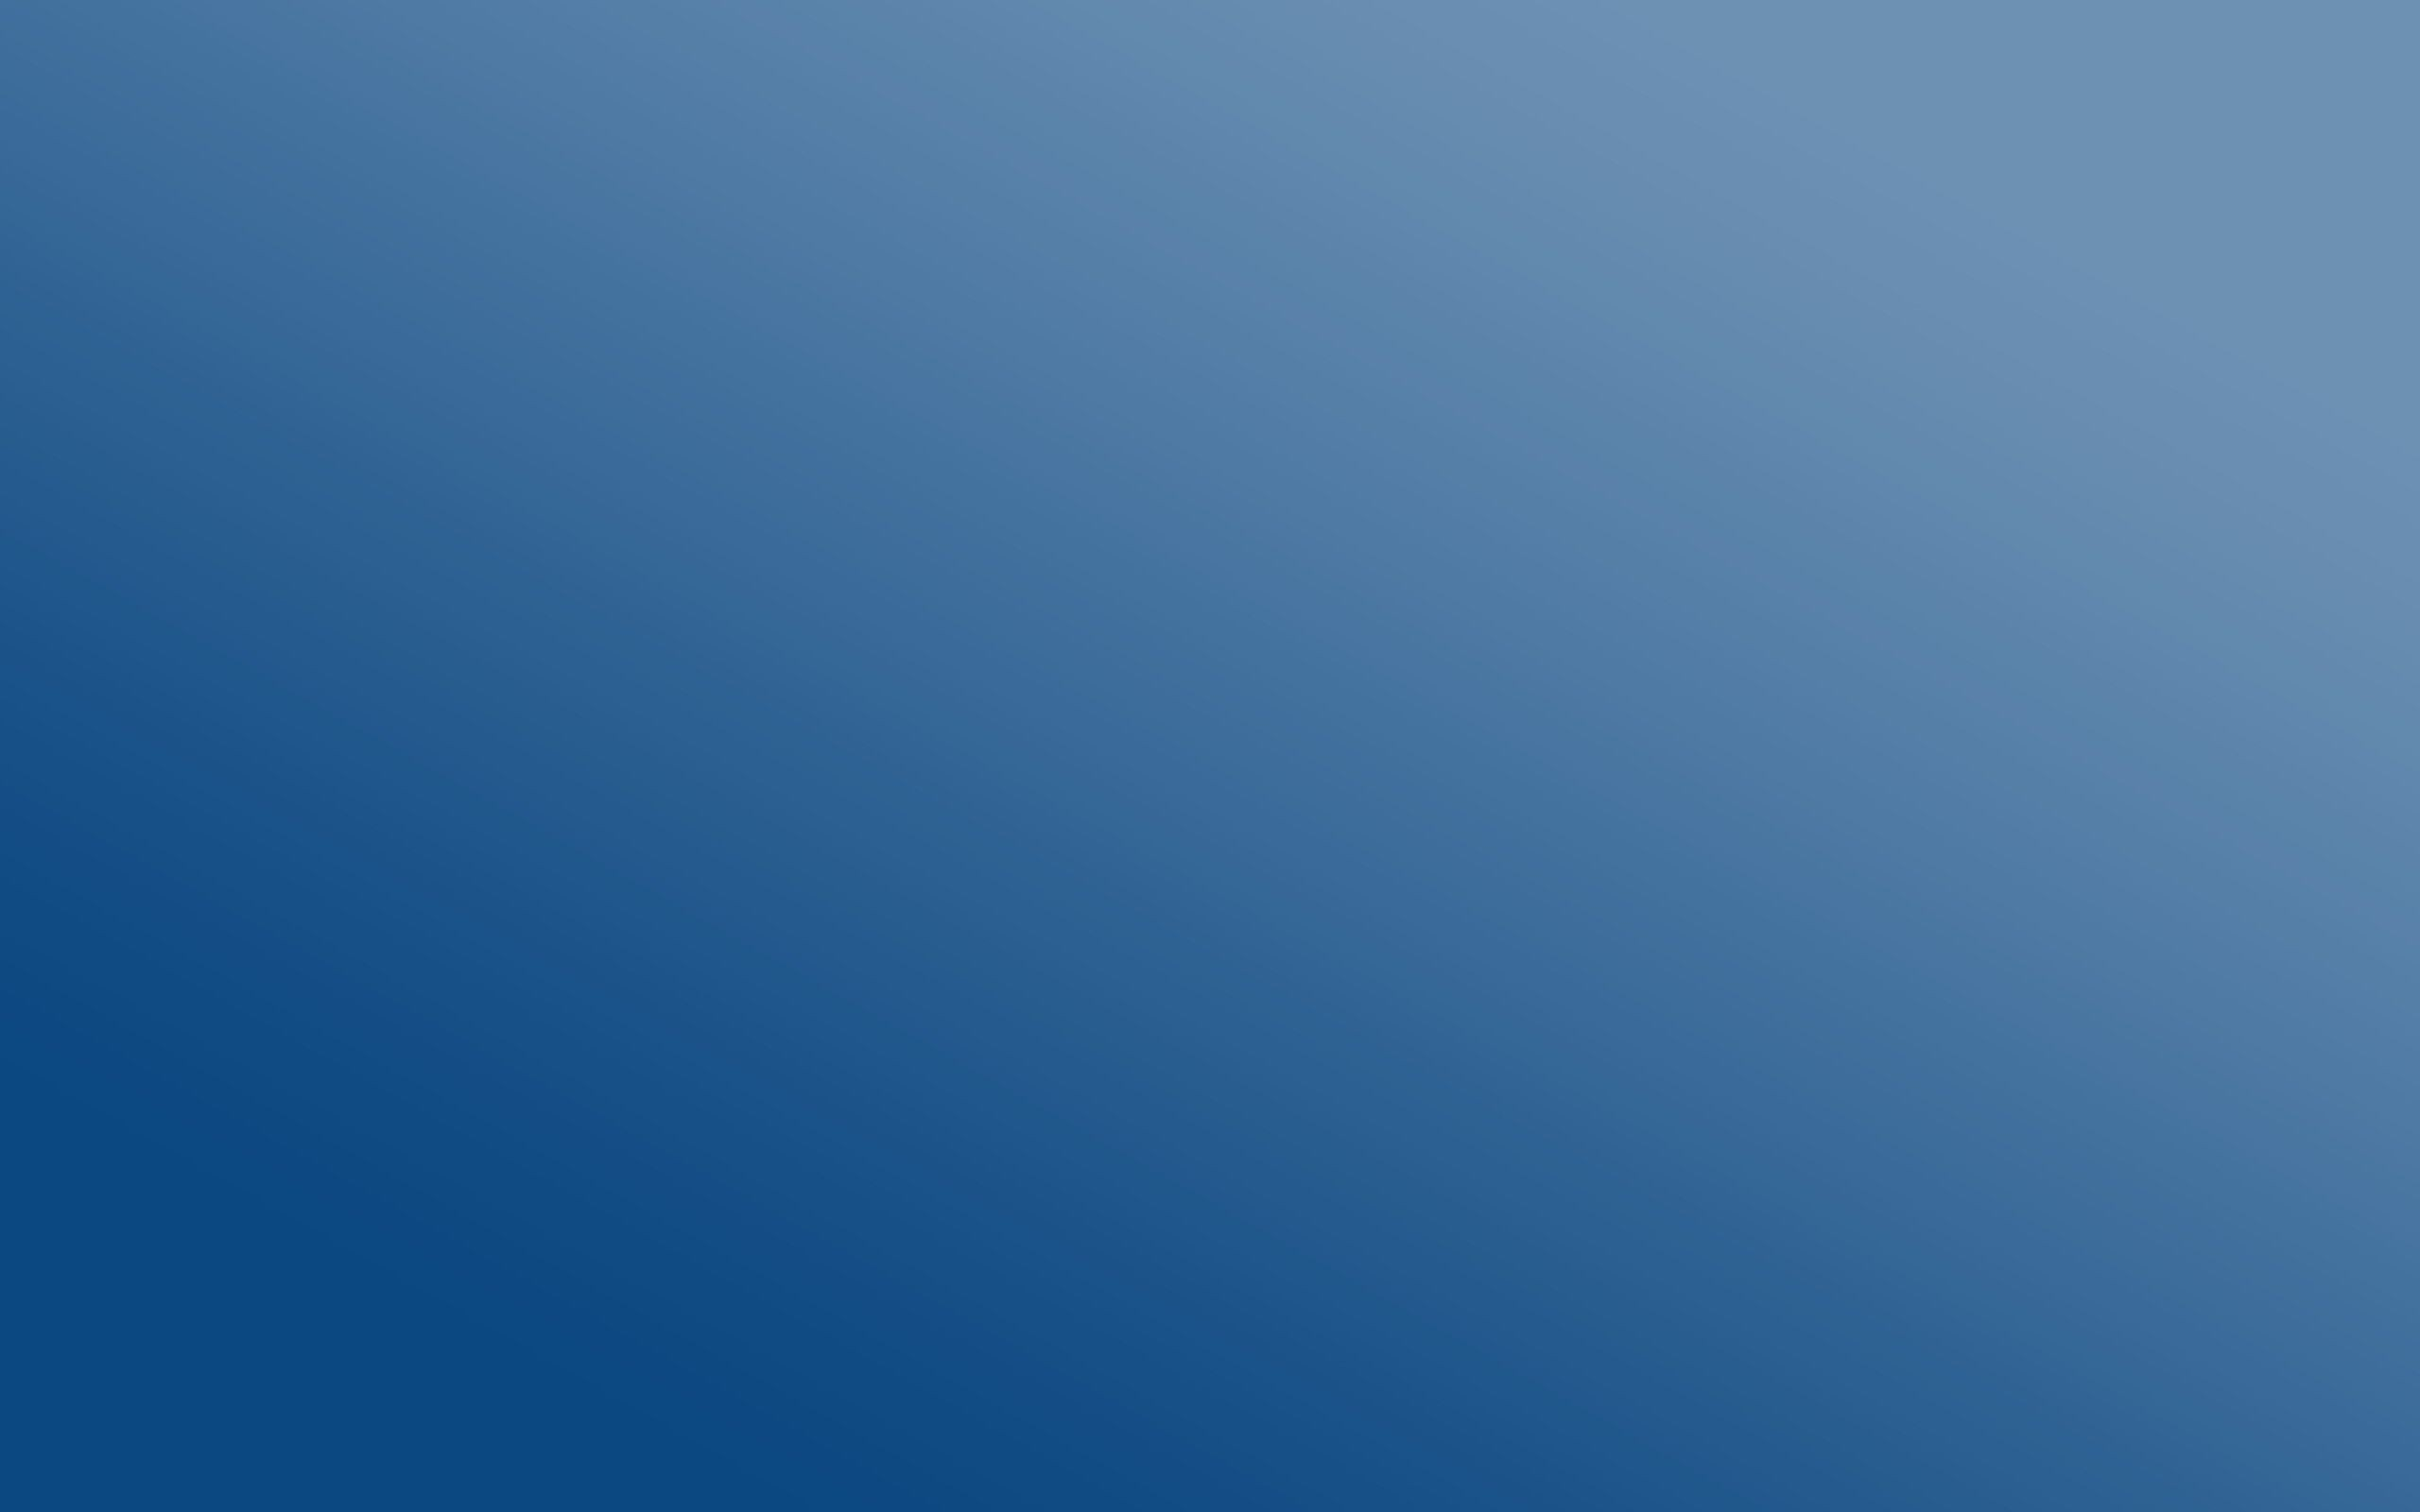 Solid Blue Background 1 Download Free Cool HD Backgrounds For